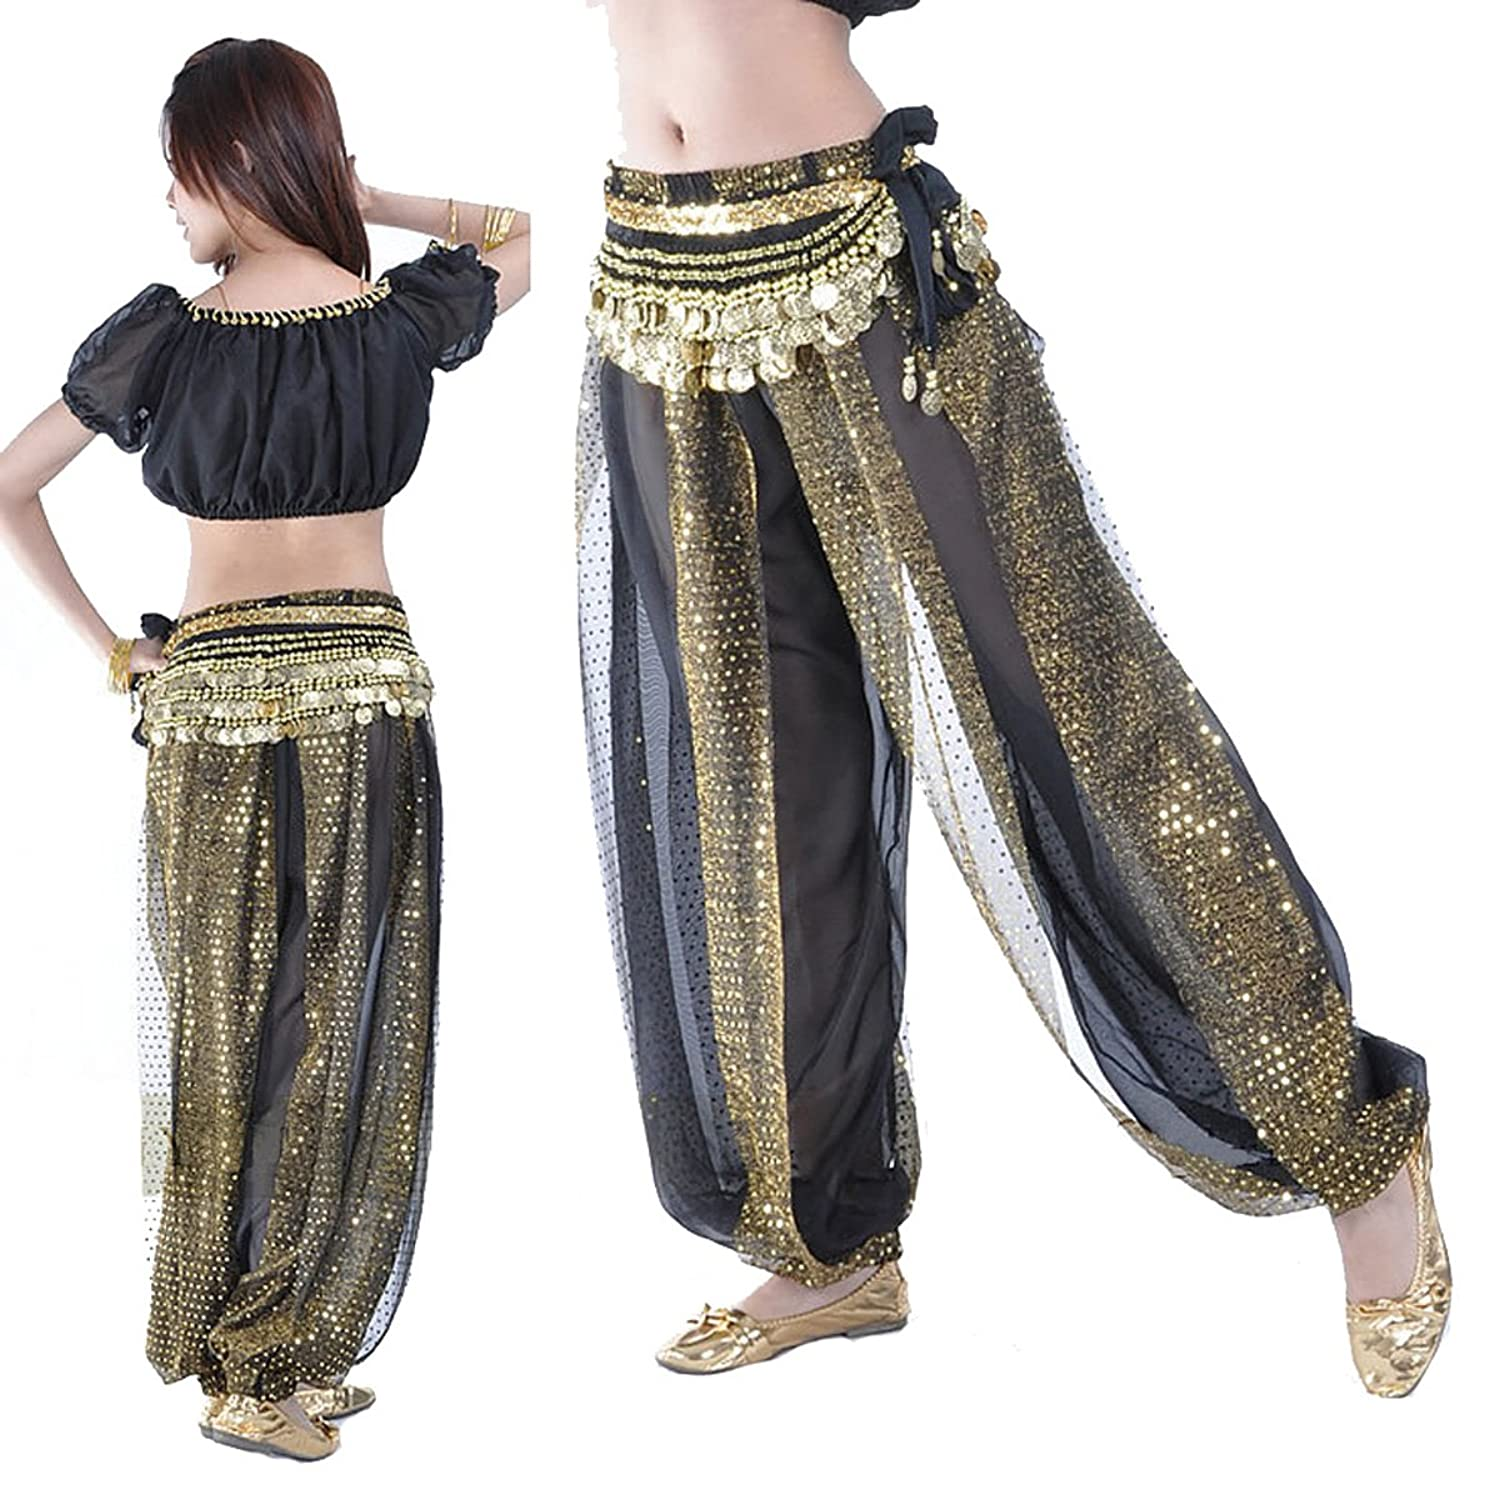 Amazon.com: Belly Indian Dance Performance Clothing (Black Gold): Clothing